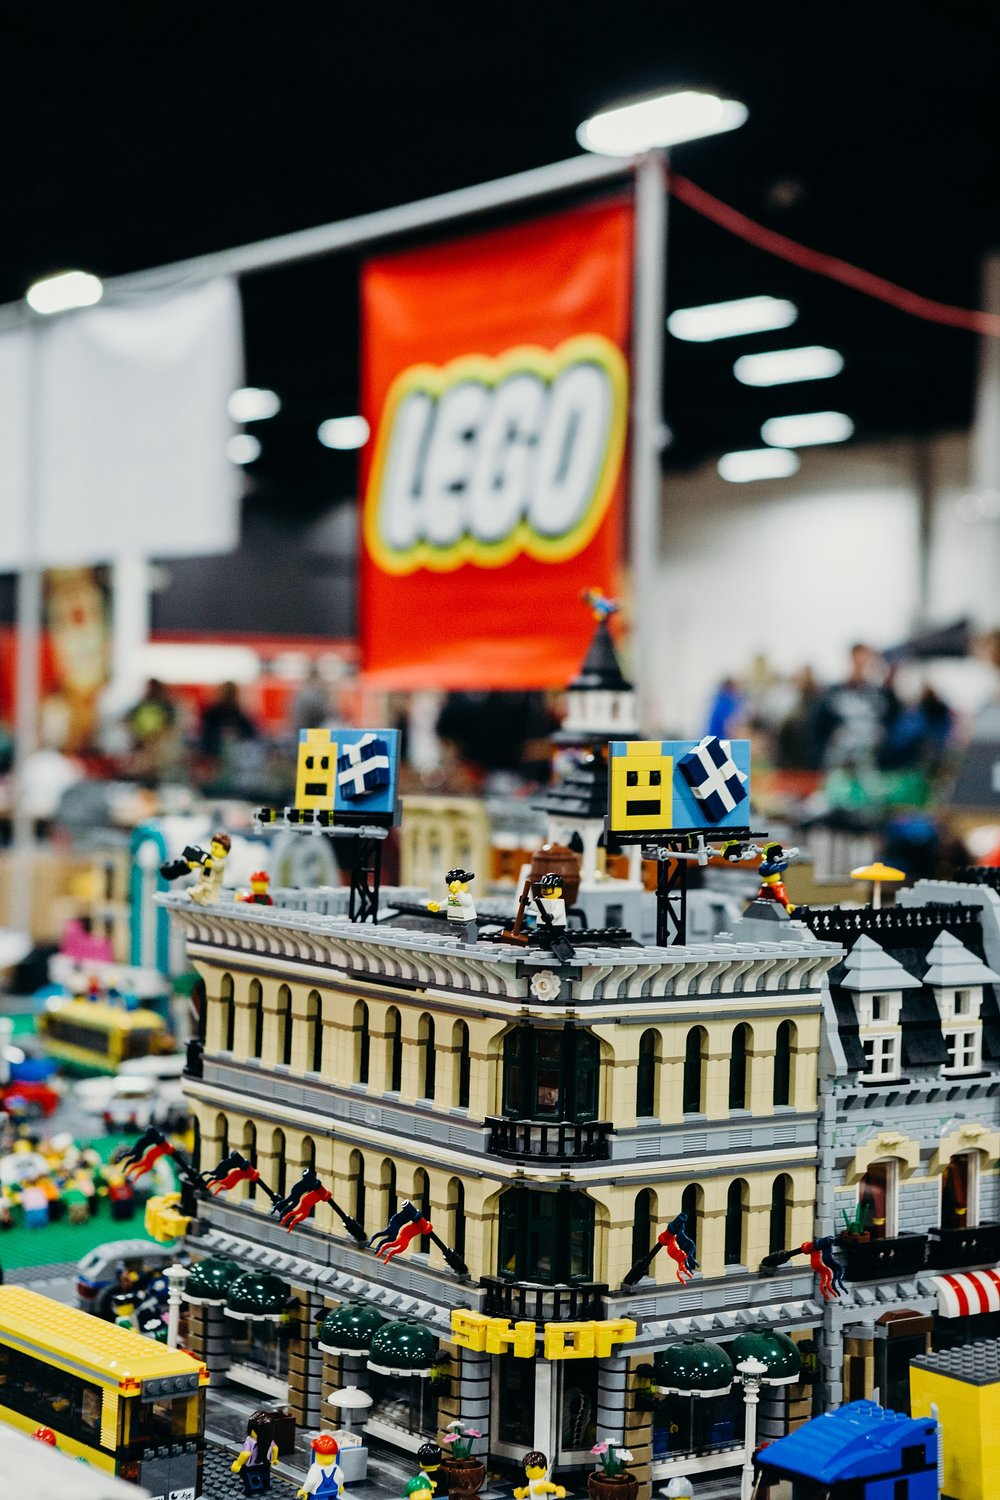 Joe_mac_Creative_Photography_Lego_Convention_Expo_Philadelphia__0028.jpg